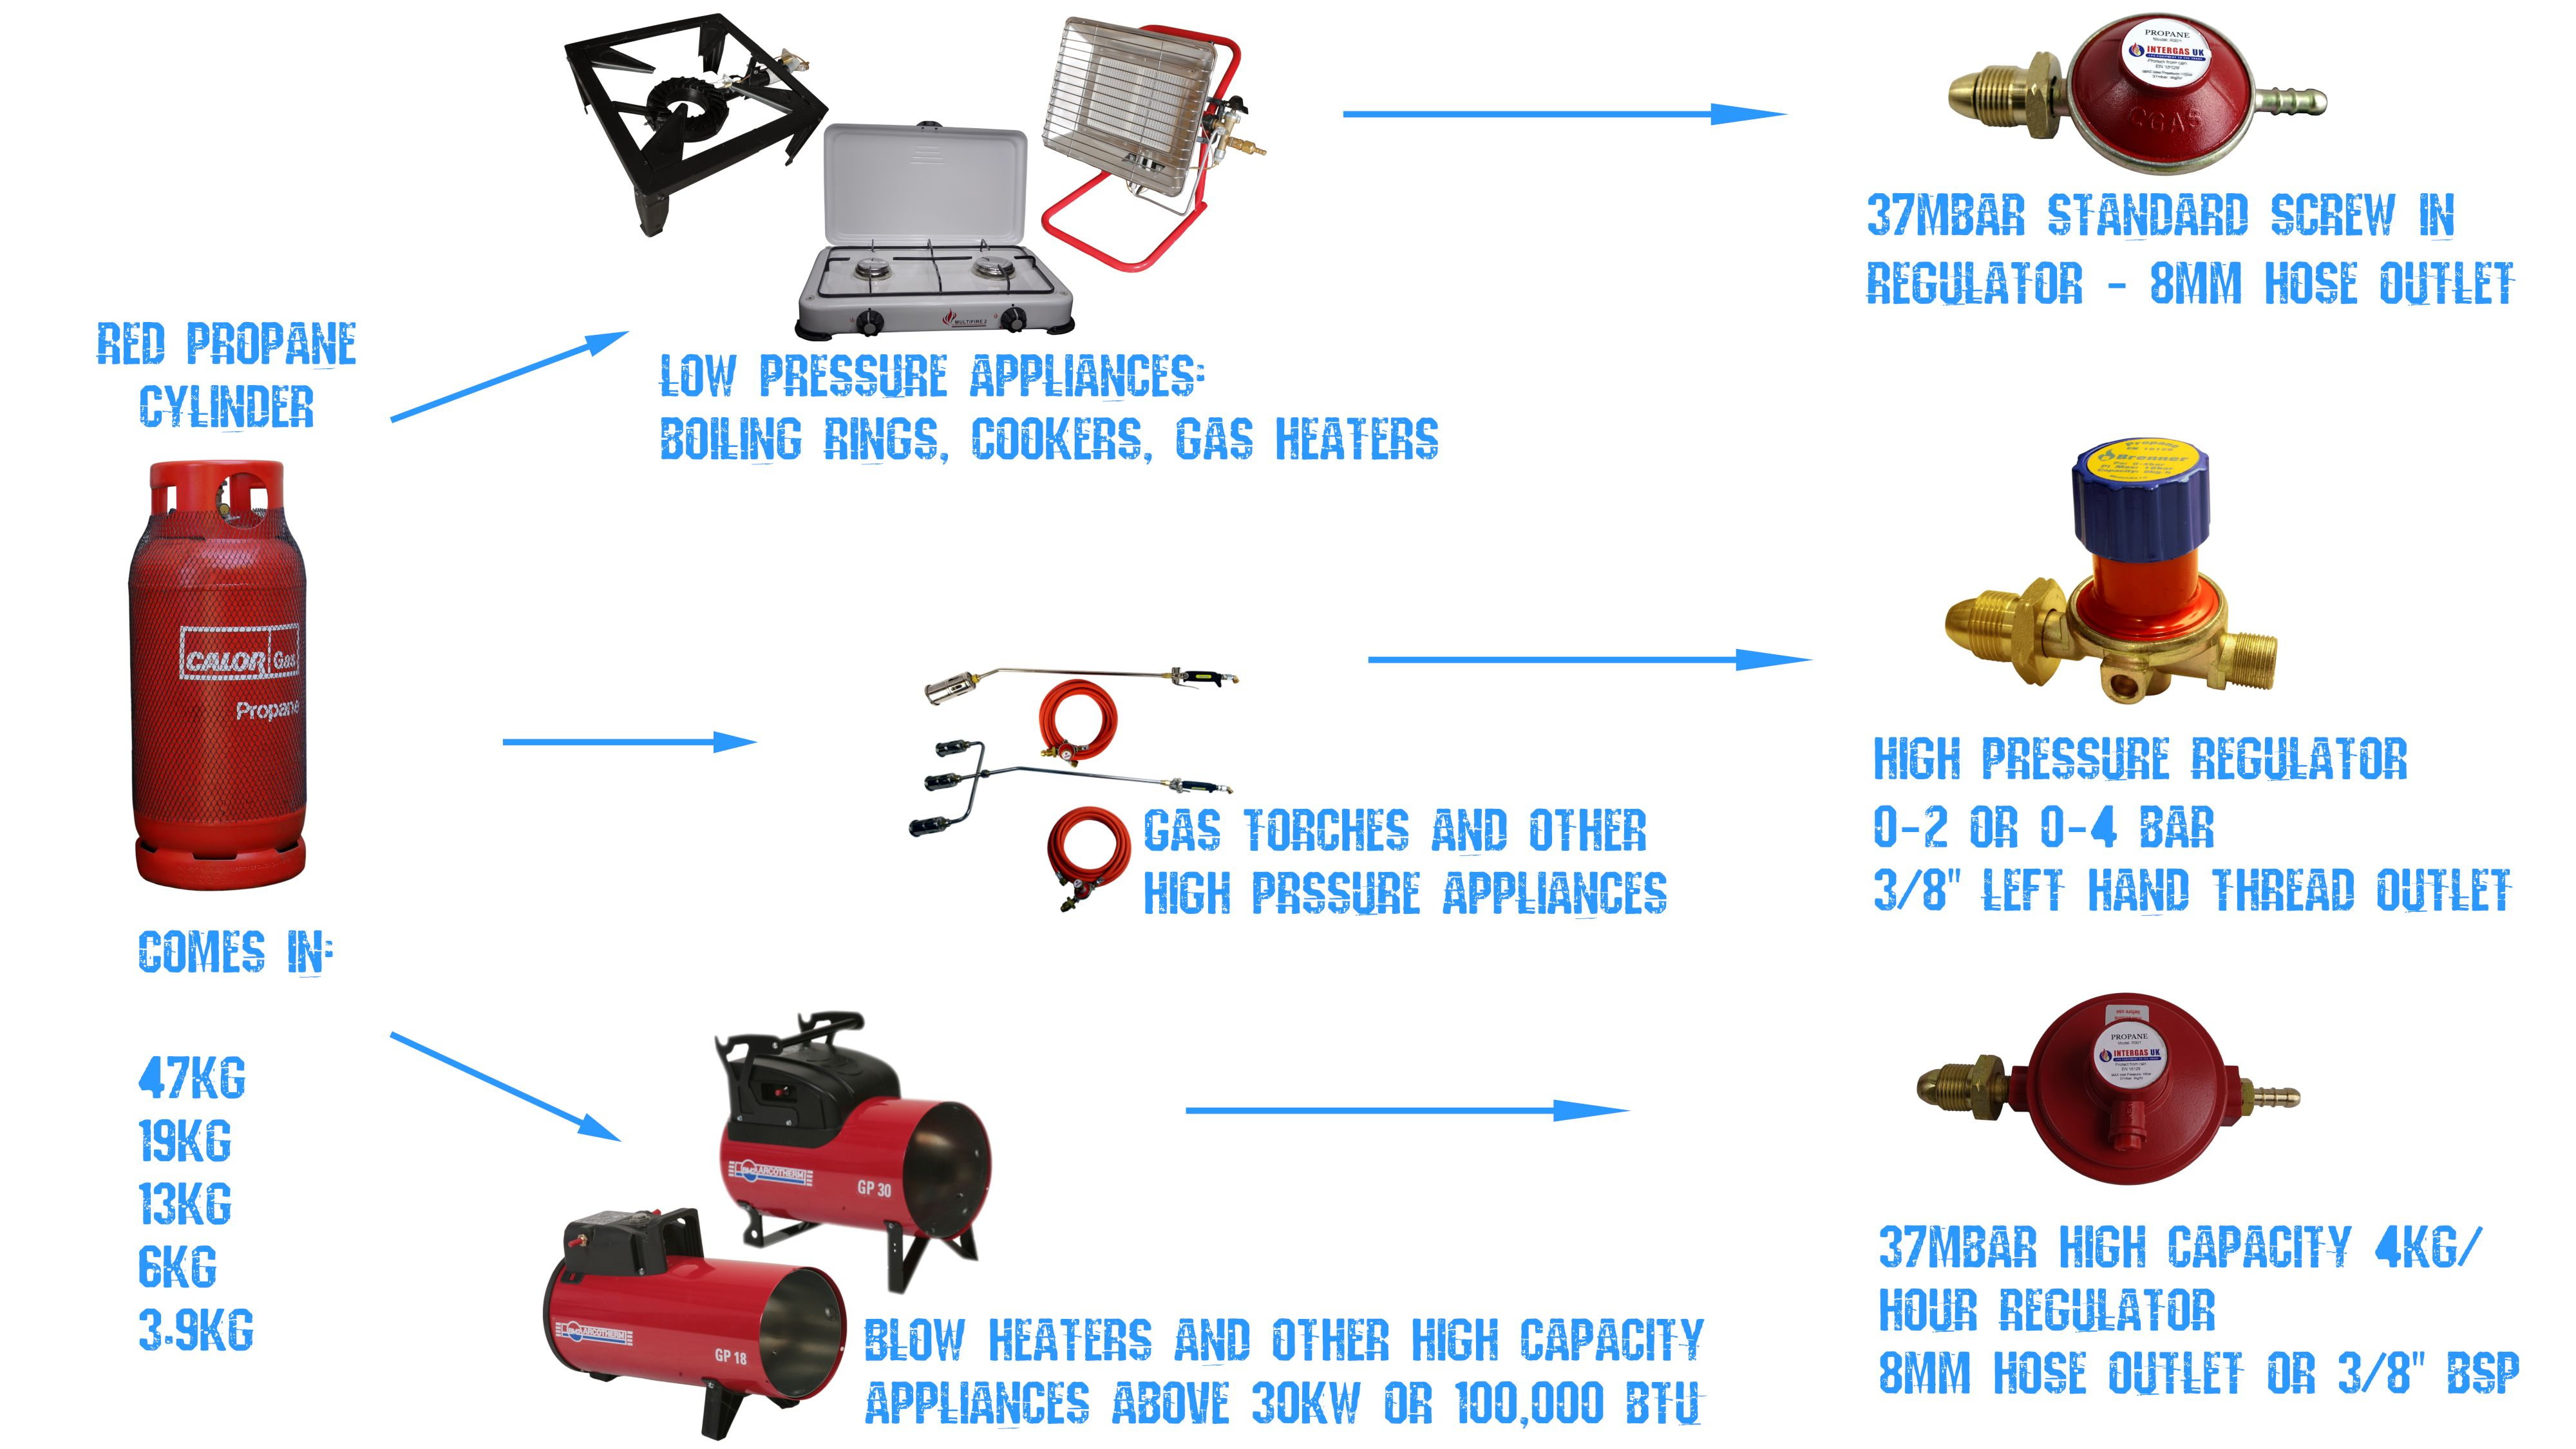 hight resolution of do you need help understanding which butane regulator to use use our chart to help you propane regulator gas gasequipment lpg cylinder cylinders